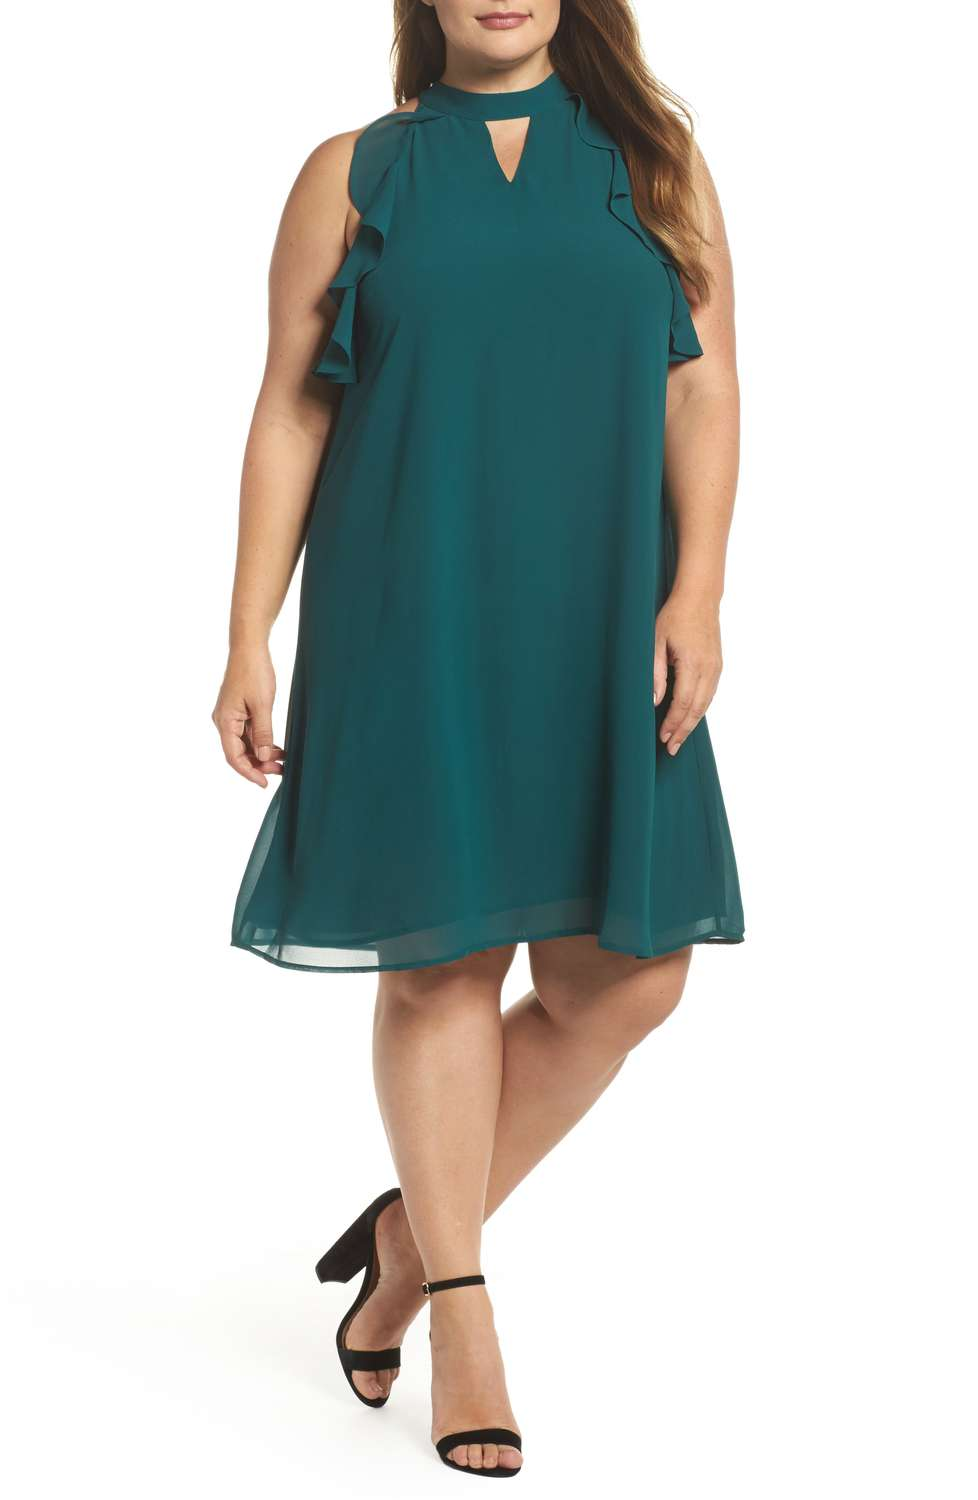 5 Plus-Size Holiday Dresses under $100 - The Plus-Sized Prep